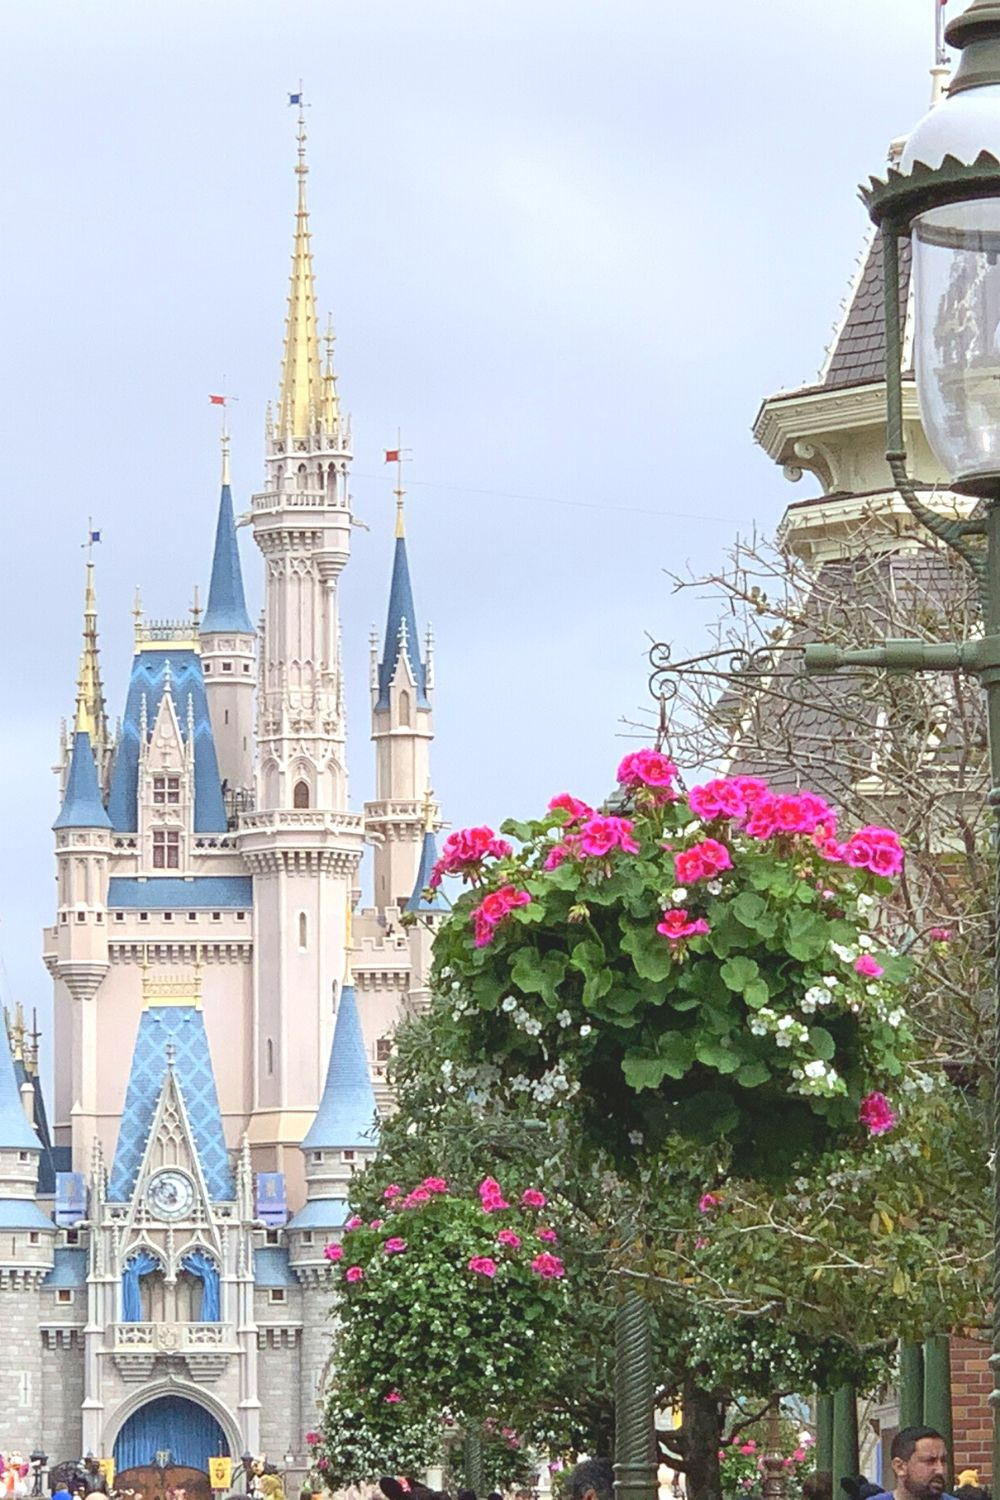 Disney officially submitted a proposal for a phased reopening. Here's the news on Disney's plans for reopening Disney parks in phases.